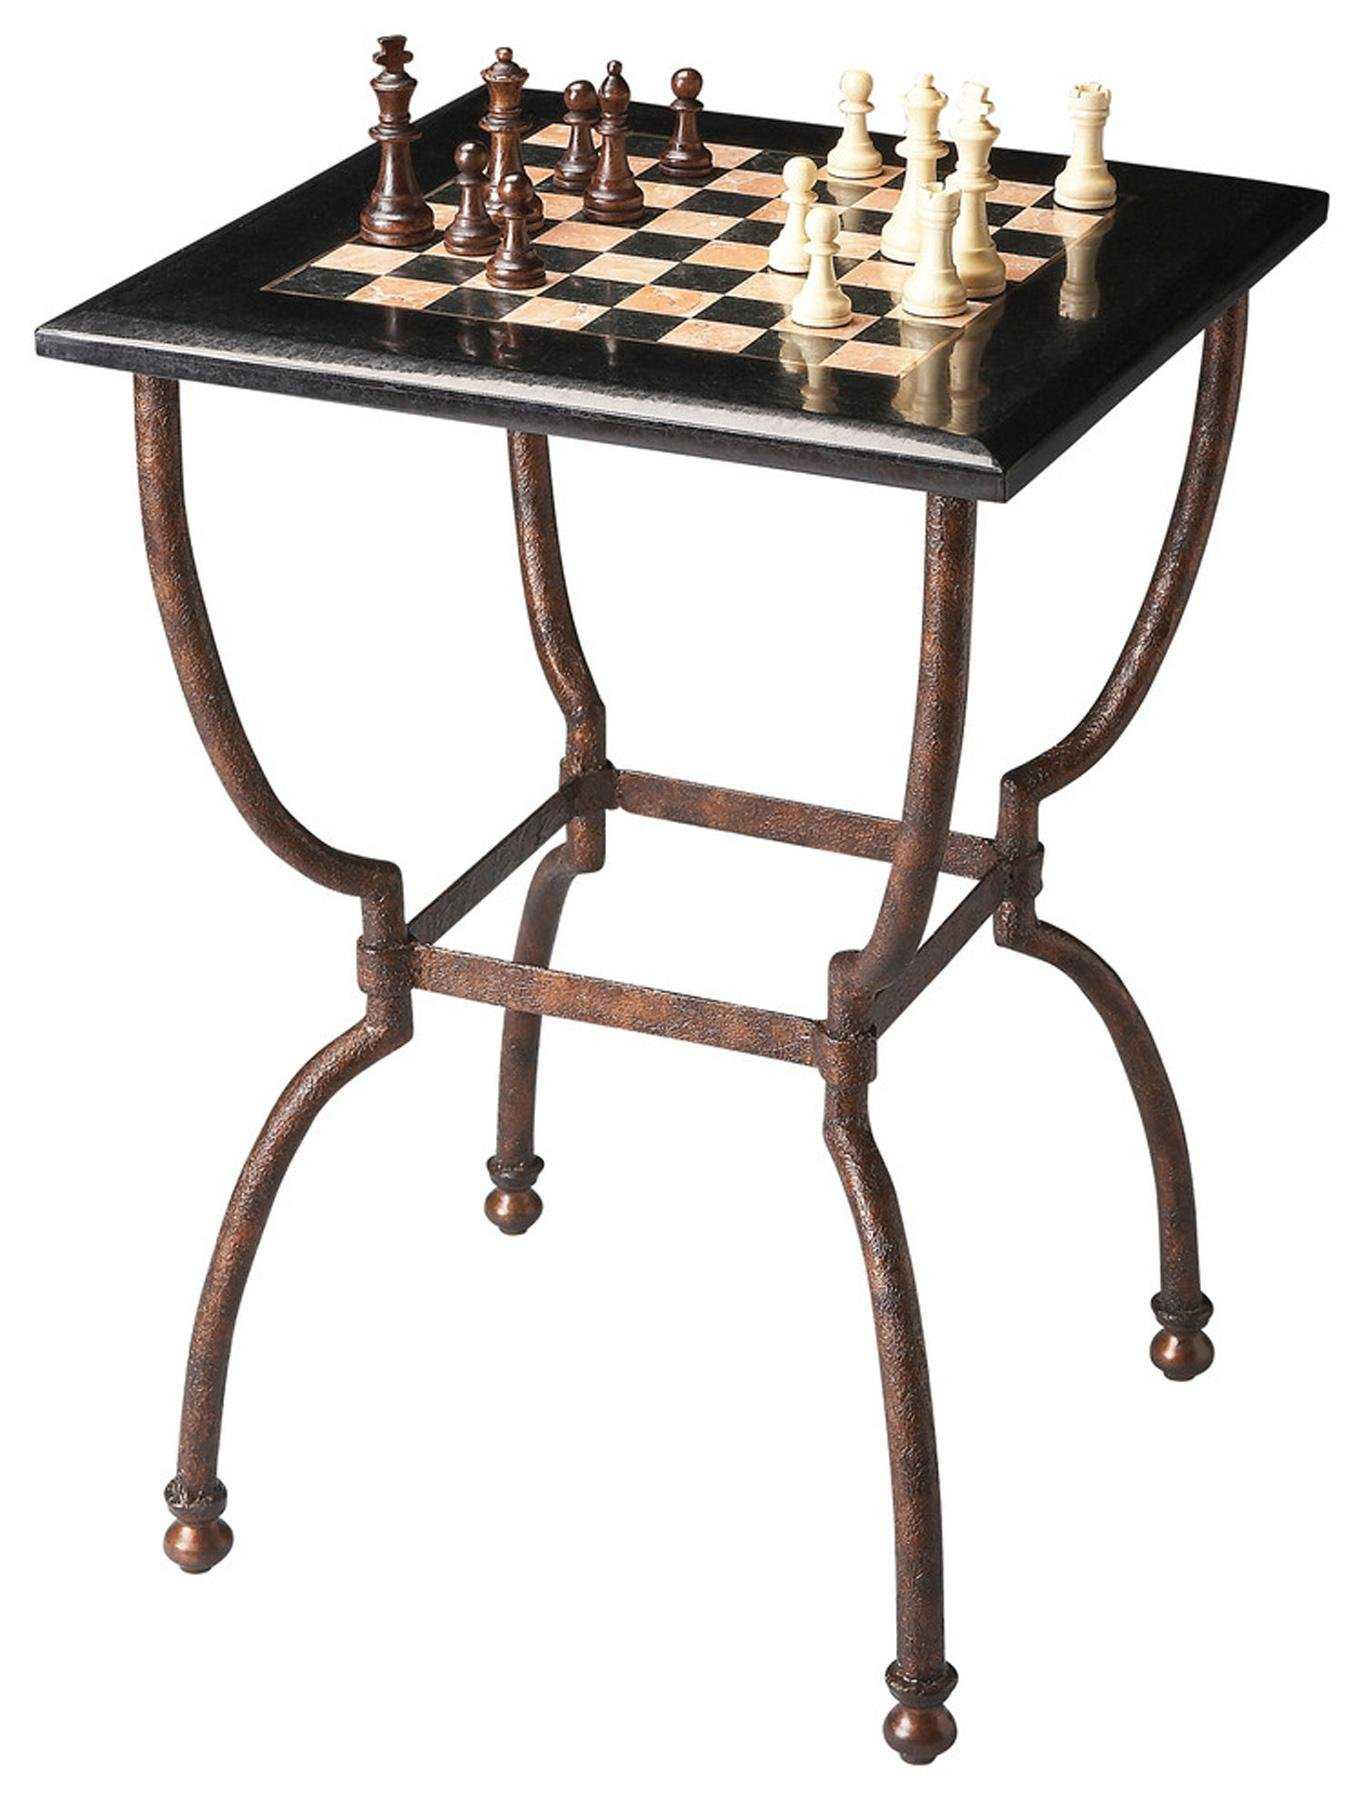 BUTLER 6061025 FRANKIE FOSSIL STONE GAME TABLE by Butler specality company